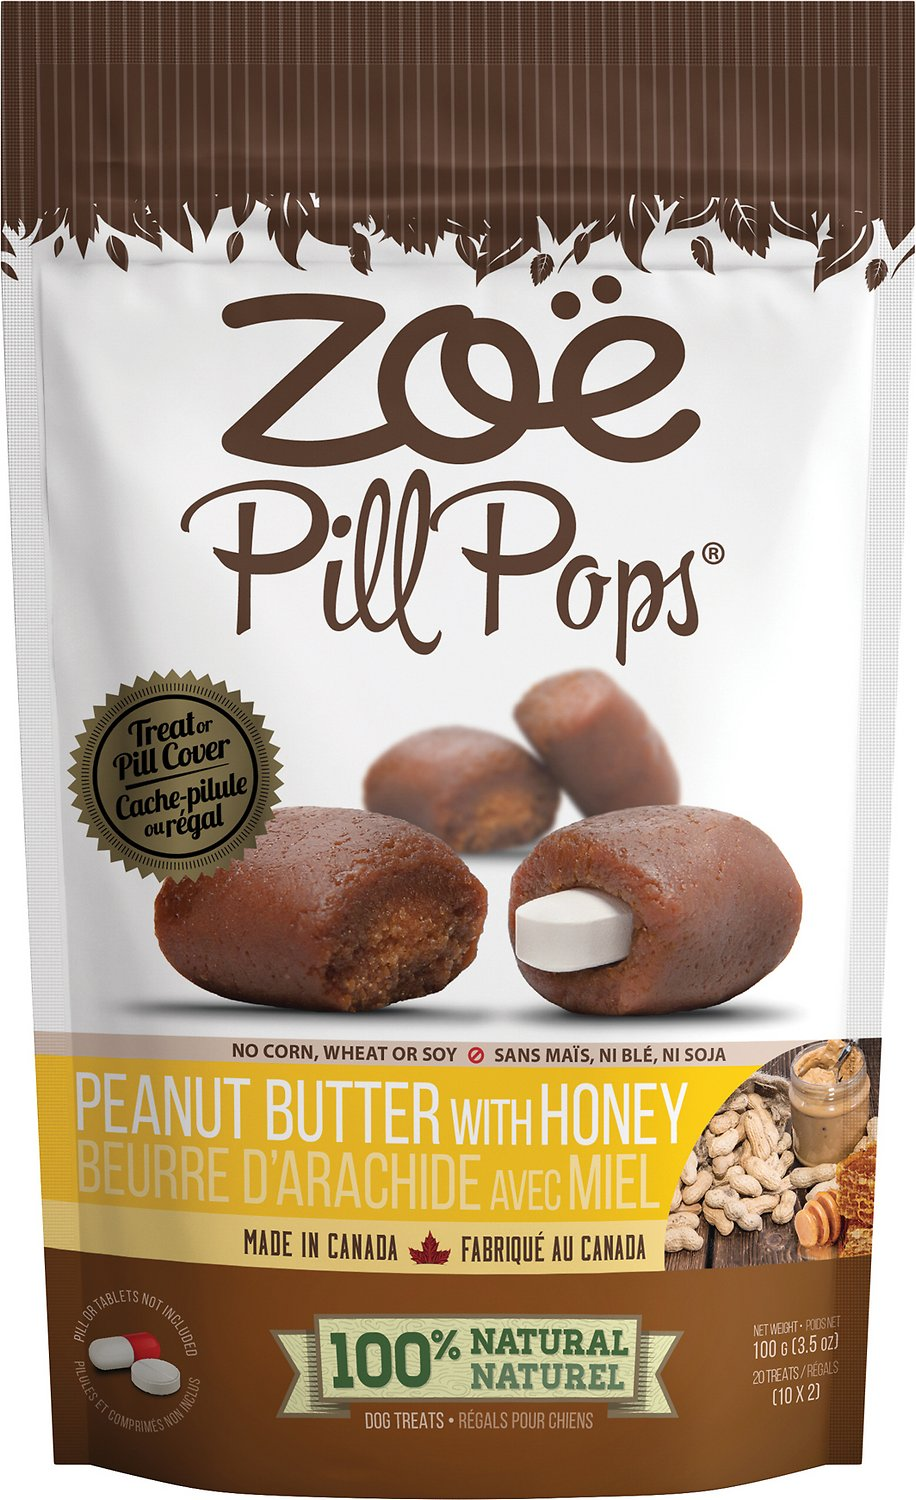 Zoe Pill Pops Peanut Butter with Honey Dog Treats, 3.5-oz bag